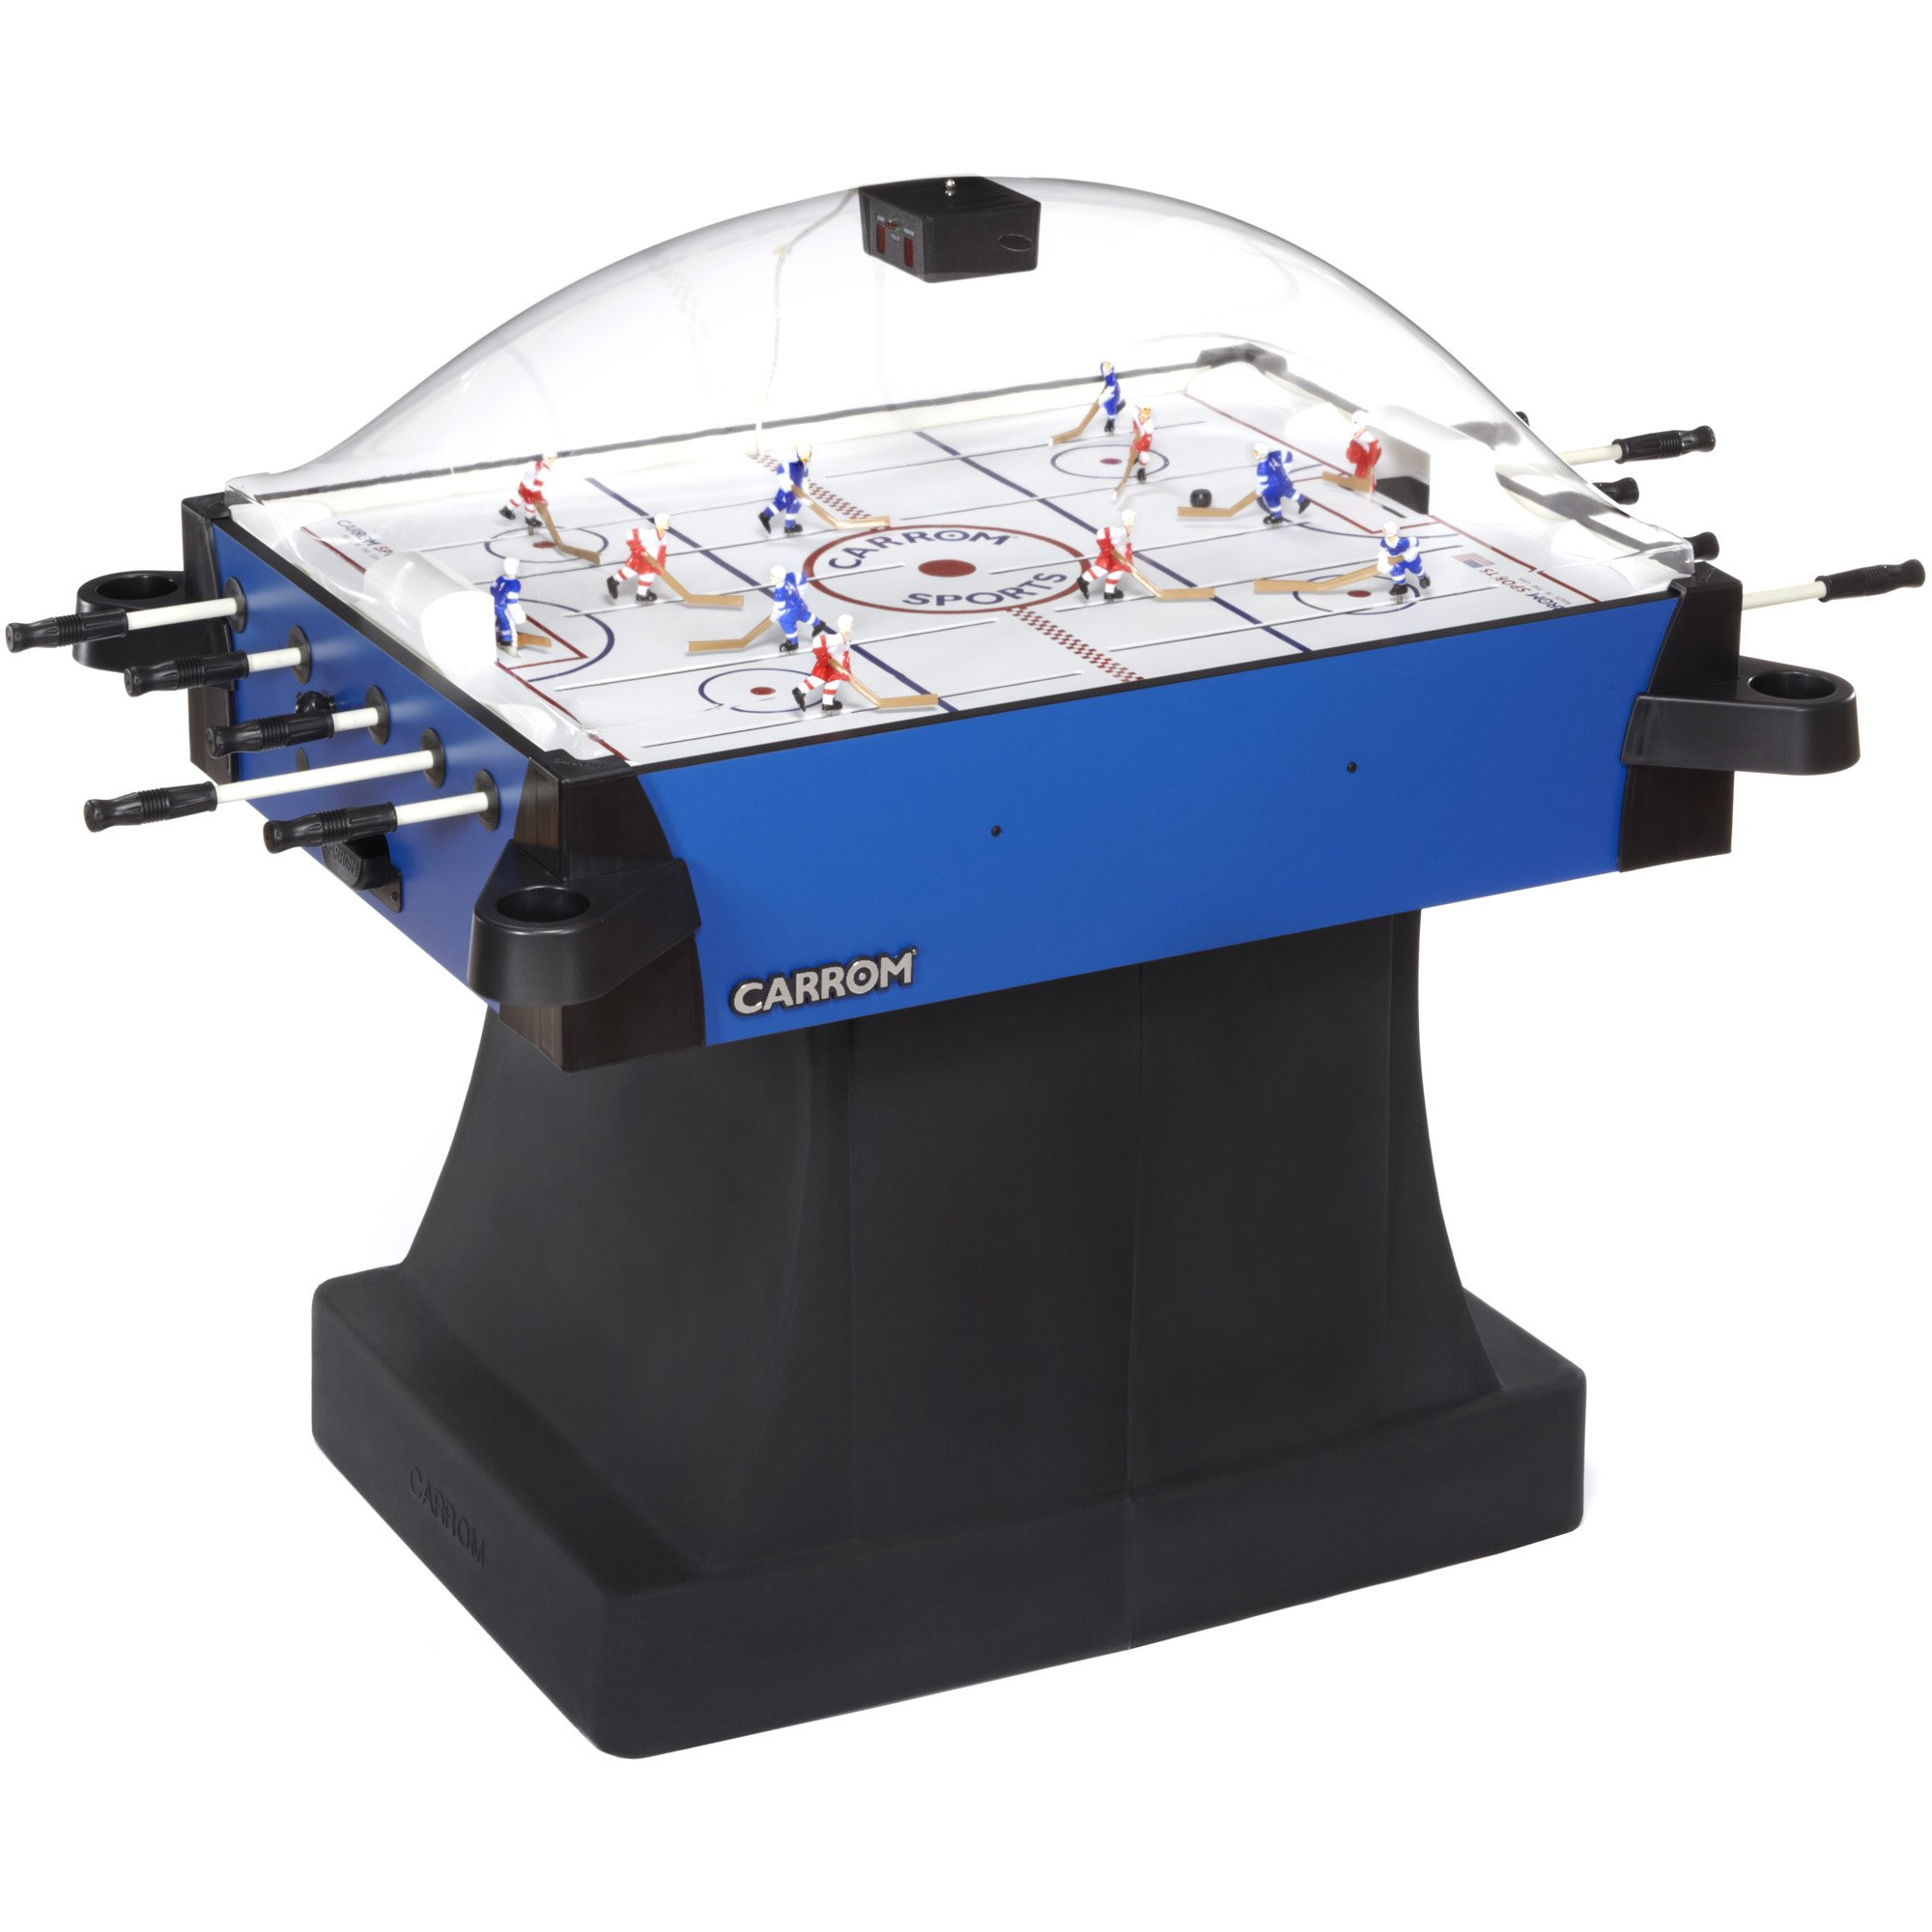 Carrom 435.01 Signature Stick Hockey Table with Pedestal (Blue)